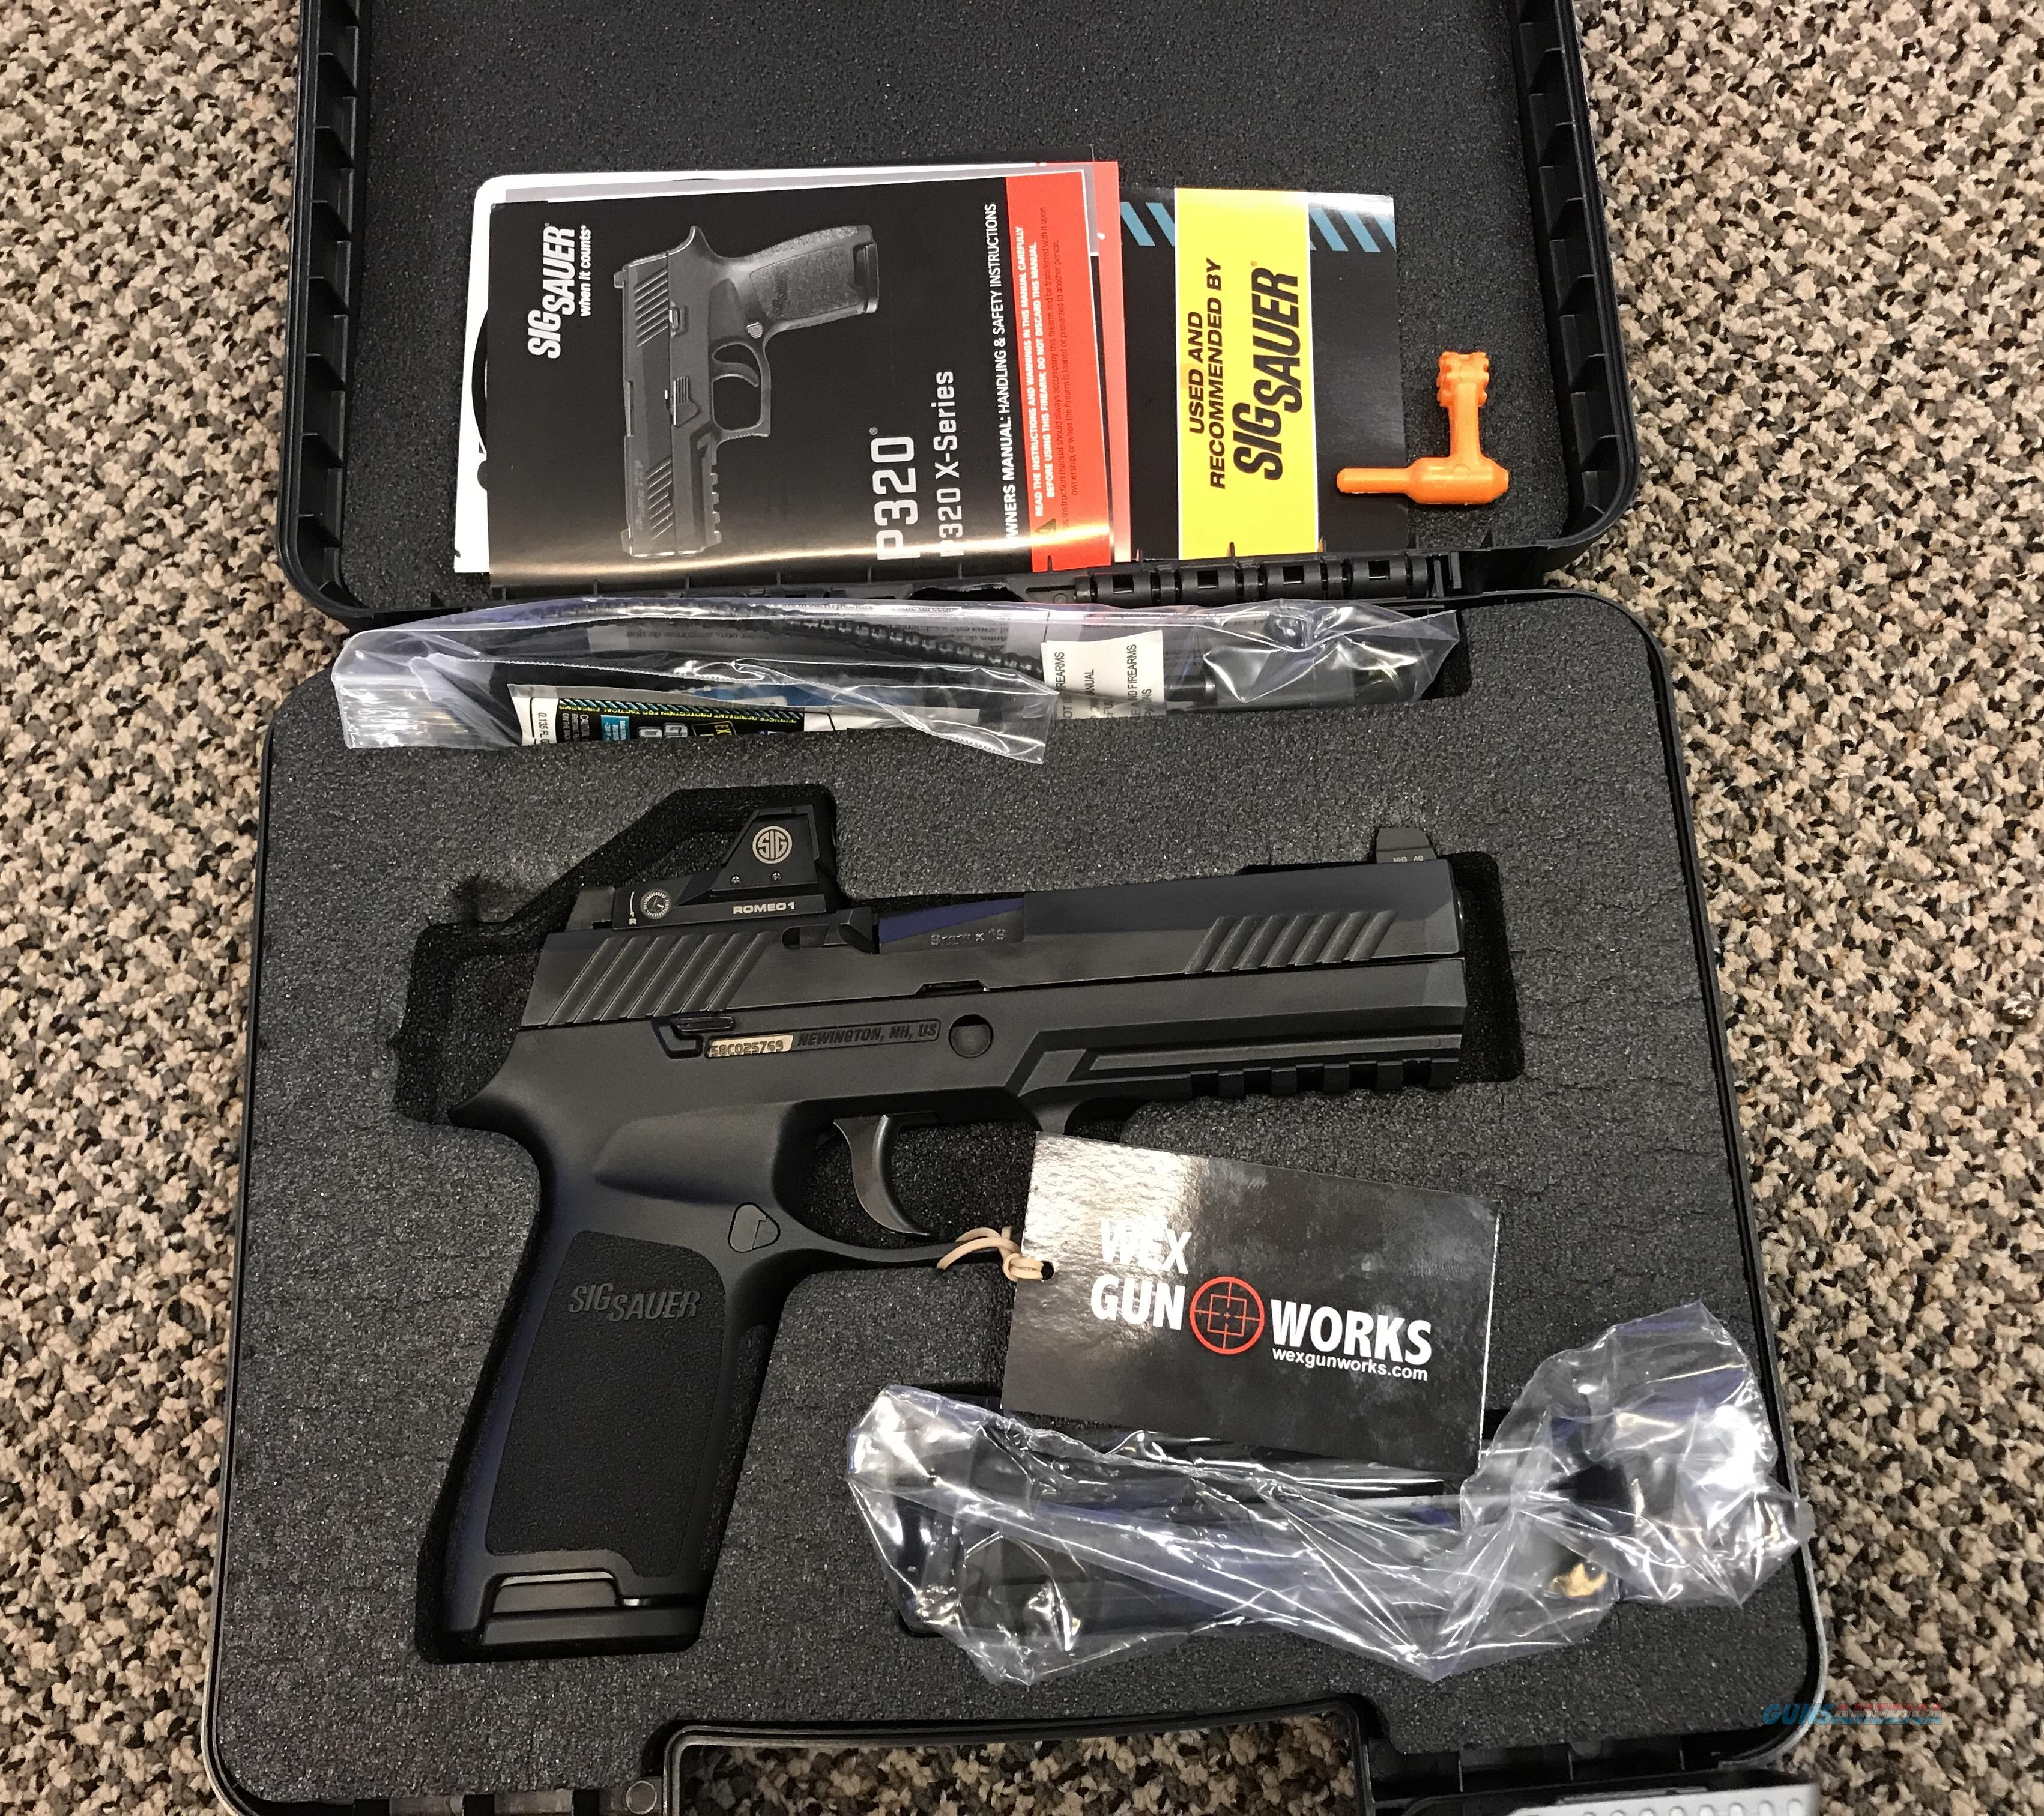 SIG SAUER P320F RX 9MM SIG ROMEO RED DOT SIGLITE NIGHT SIGHTS NEW IN BOX  Guns > Pistols > Sig - Sauer/Sigarms Pistols > P320